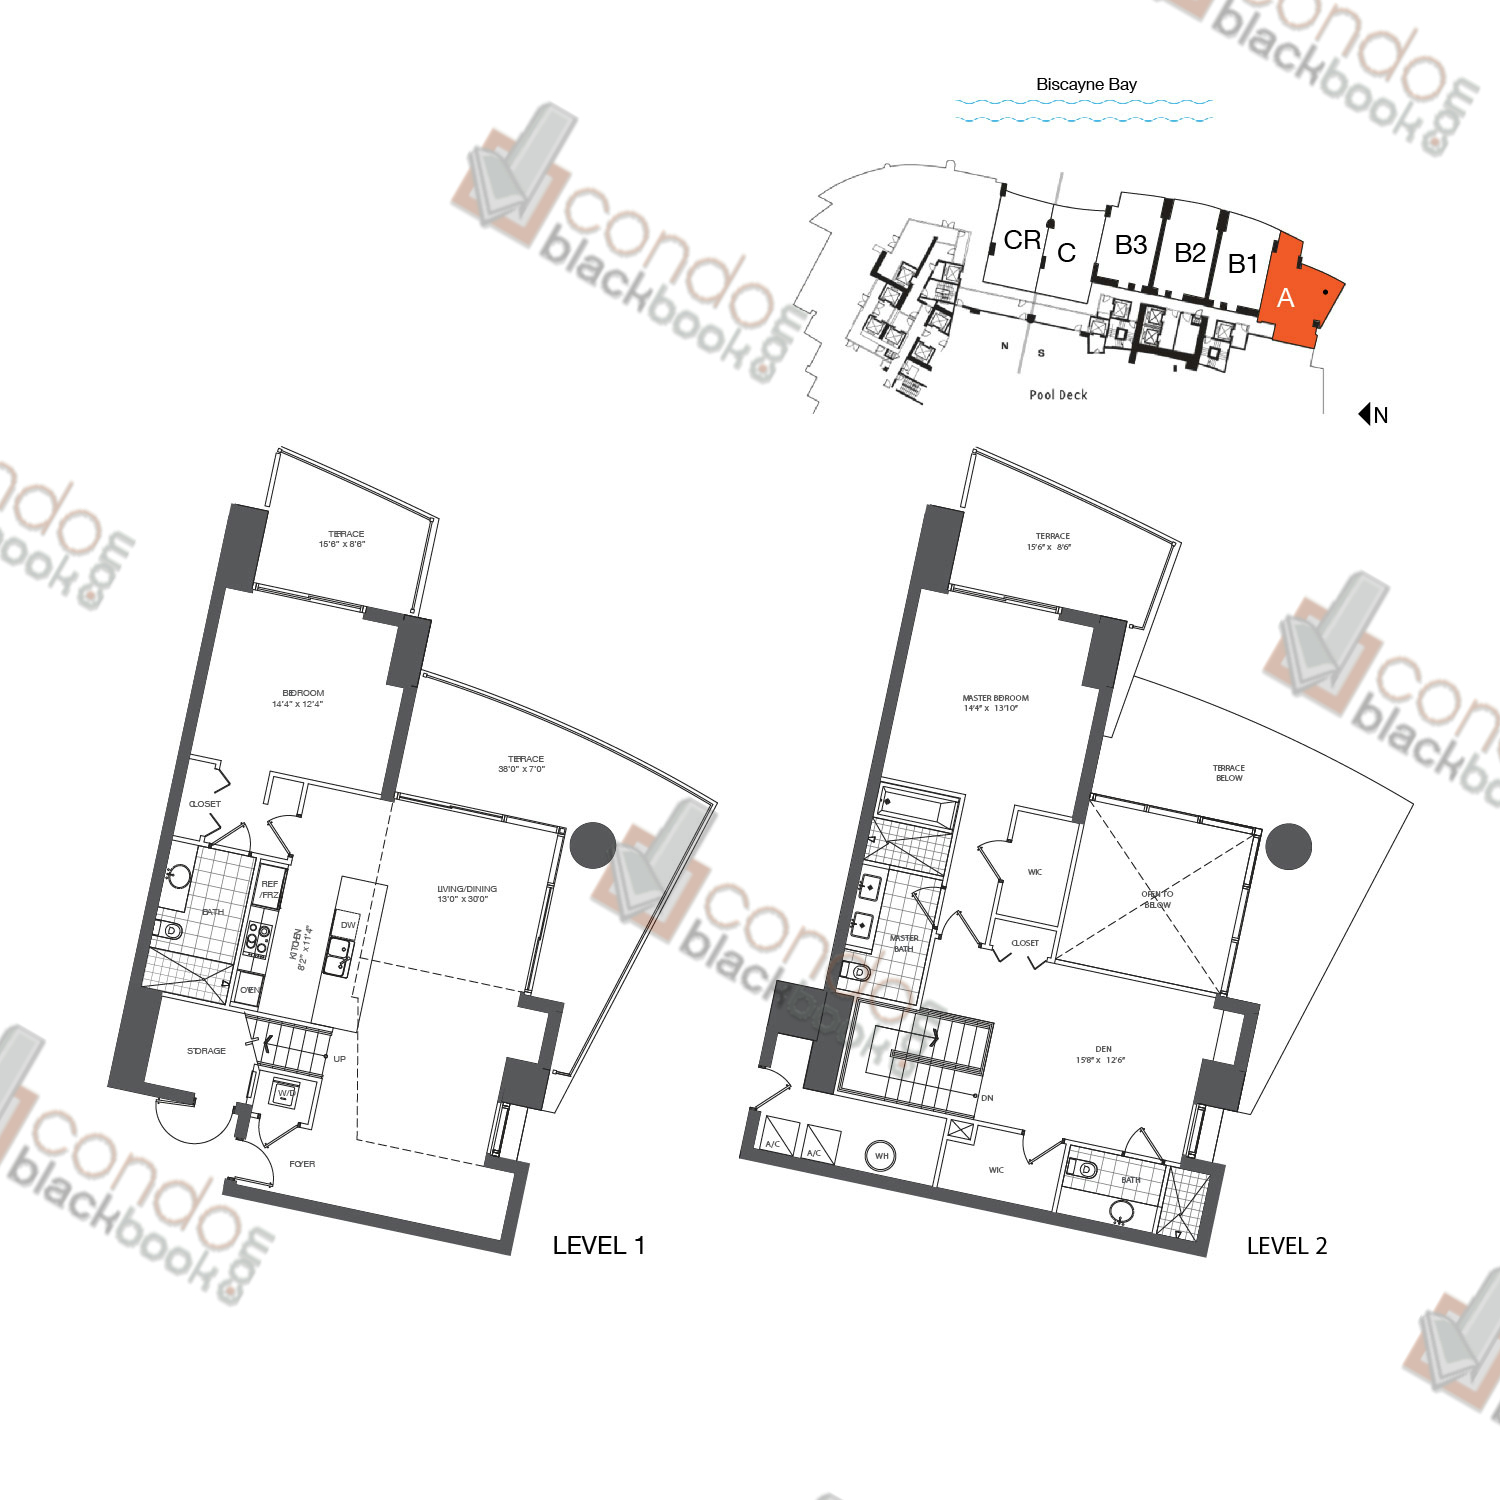 900 biscayne office floor plans home fatare for Floor plans 900 biscayne